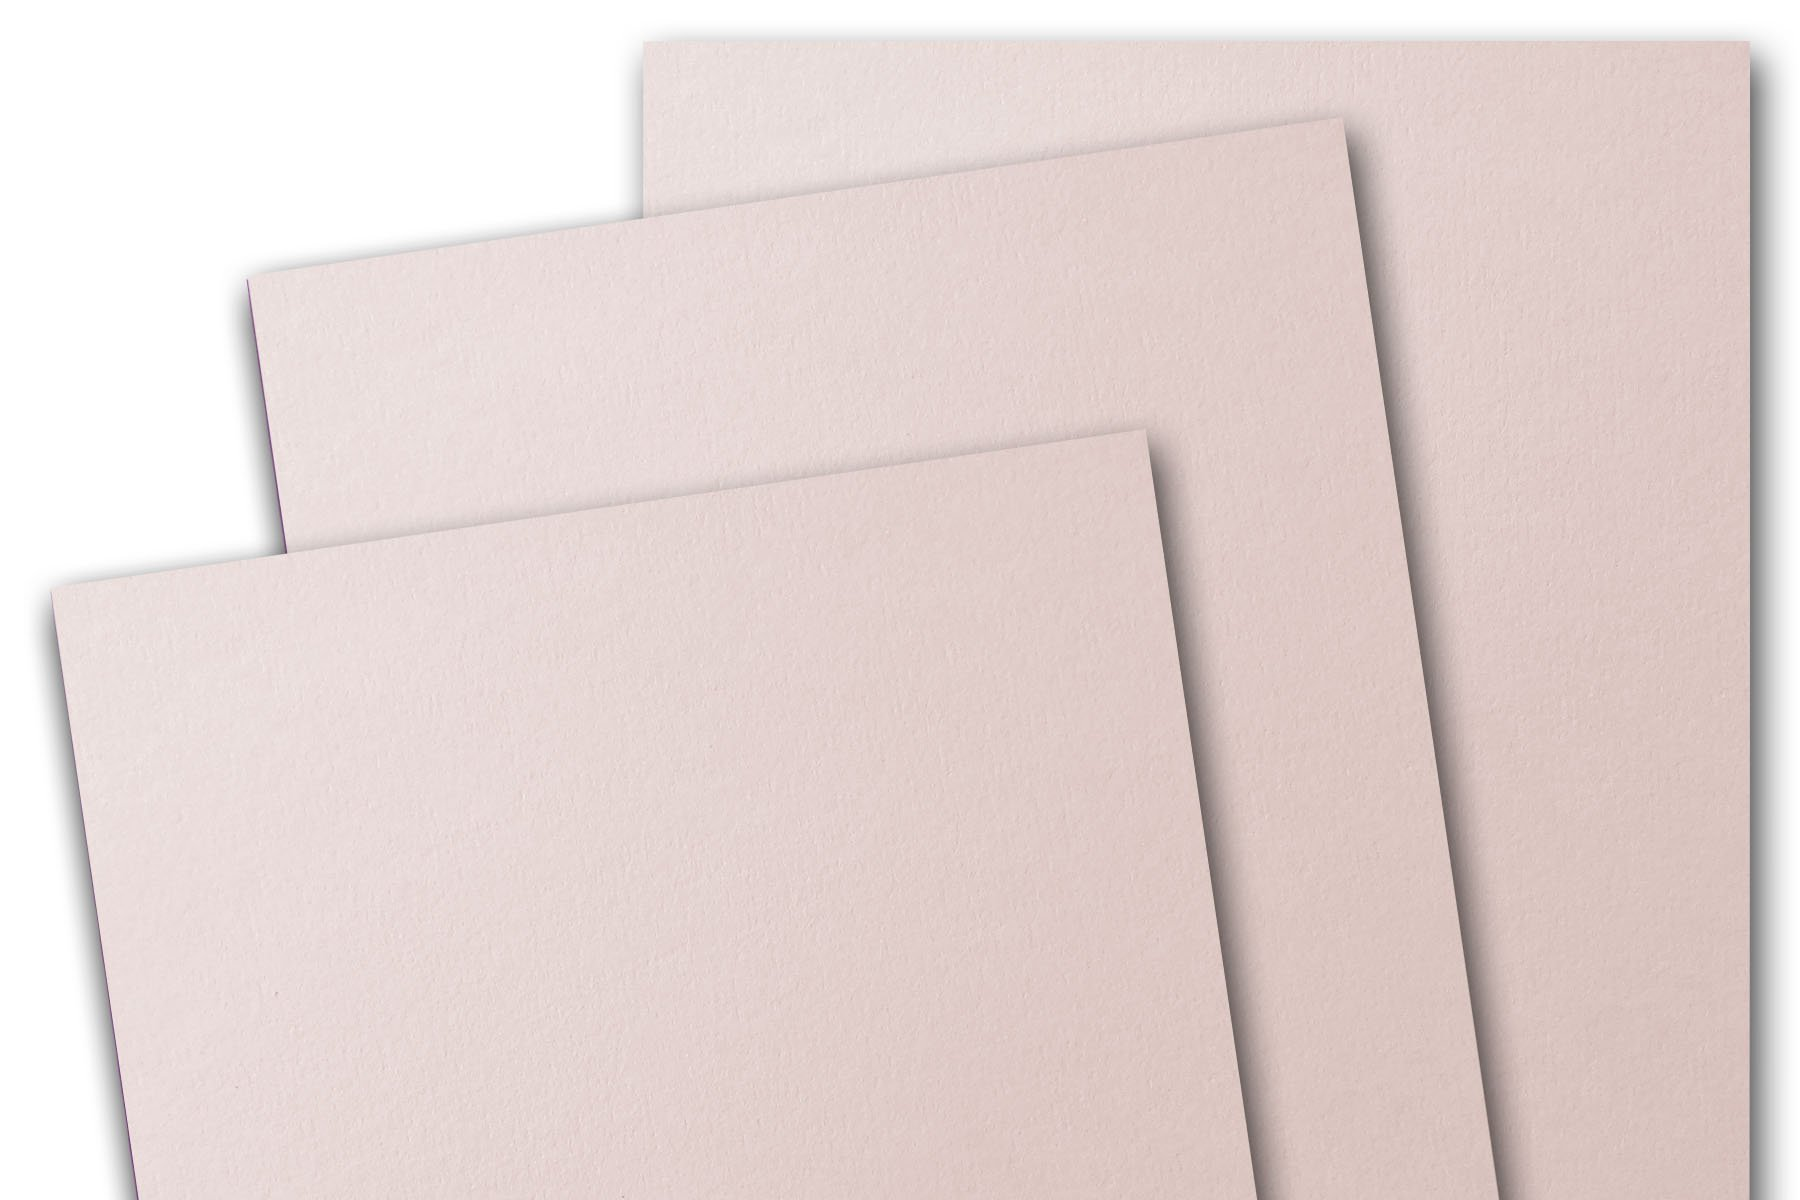 Blank Basic 8 1/2'' x 5 1/2'' inch Half Letter Matte 80# Cover Card Stock (100 Pack, Soft Pink)